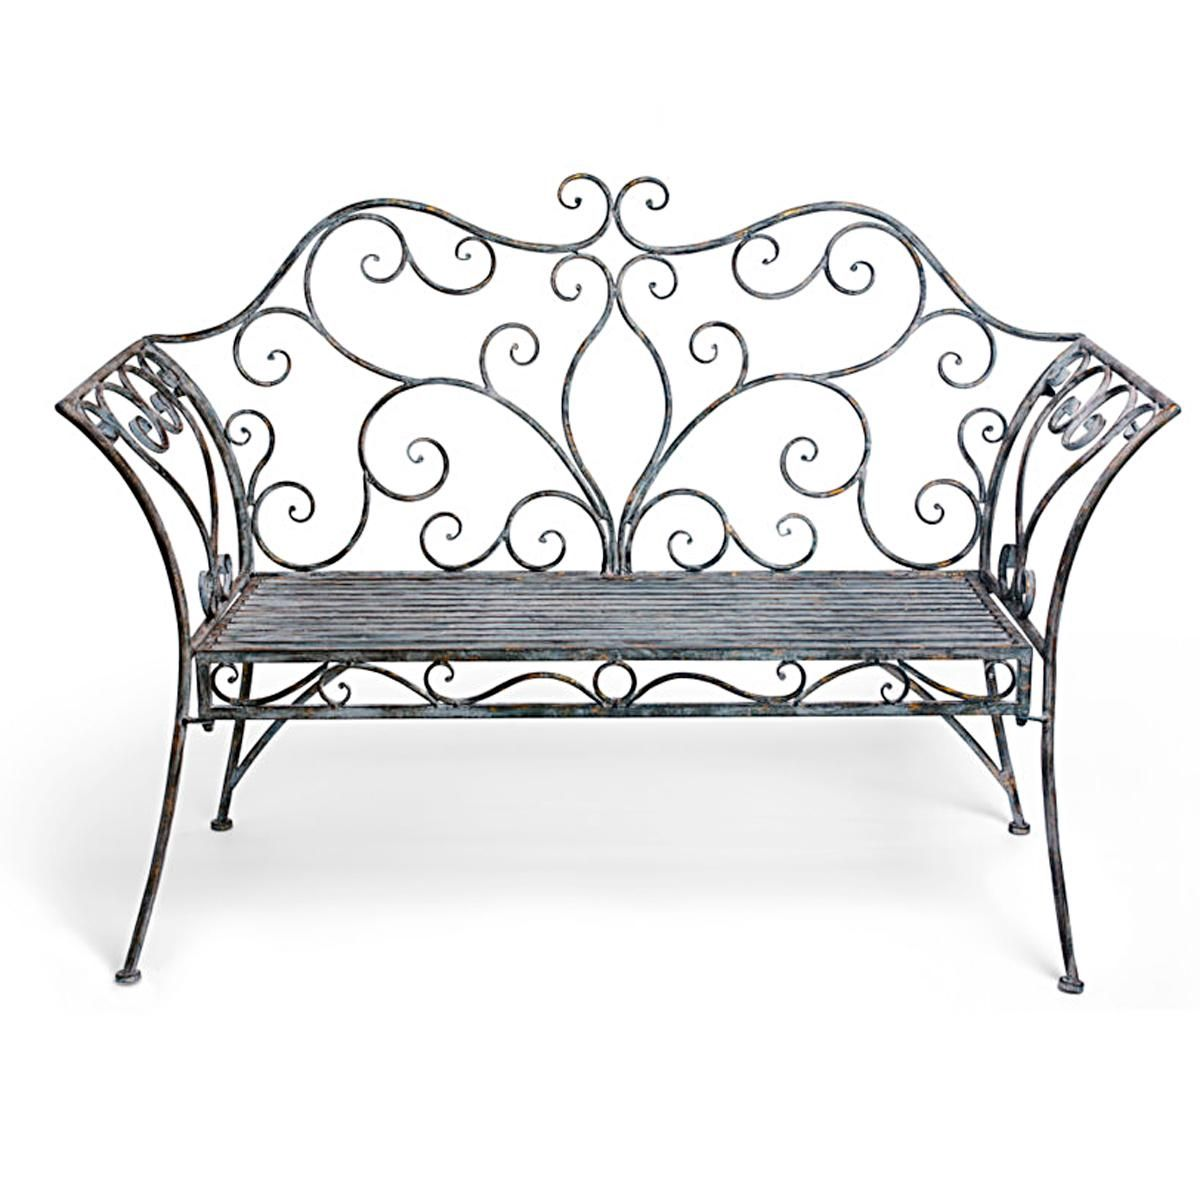 images about Metal Garden Furniture on Pinterest Gardens